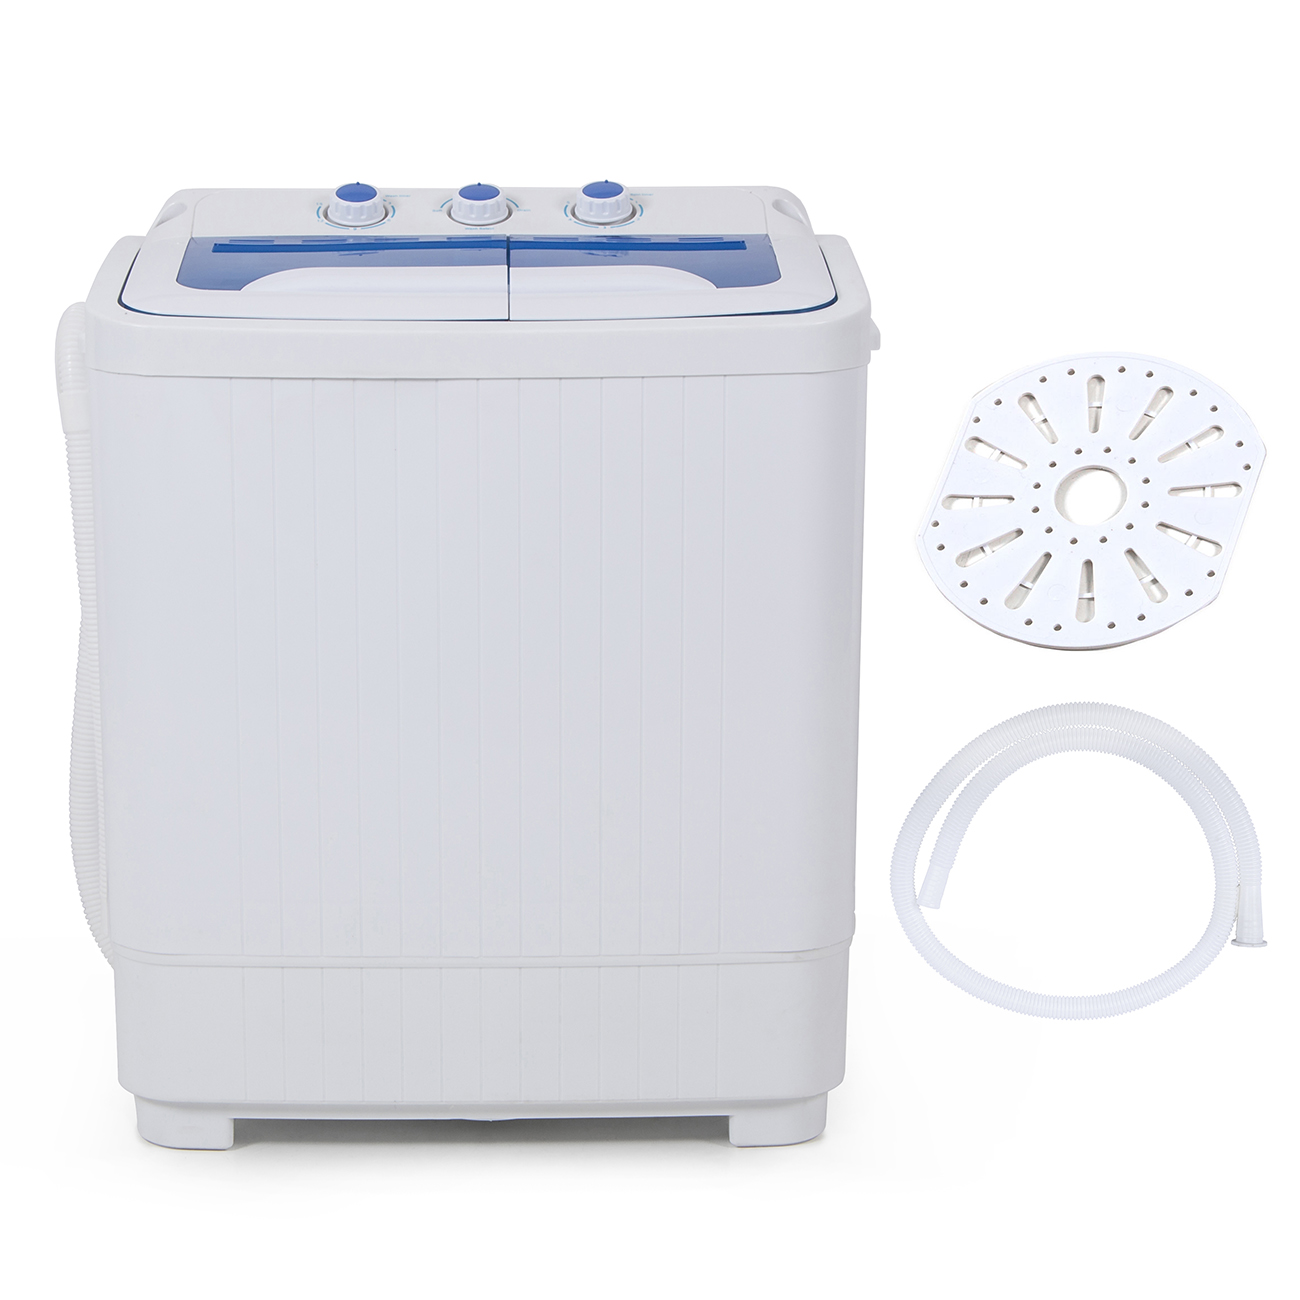 Small Clothes Dryer Portable Mini Rv Dorms Compact Dual Timer Washing Machines